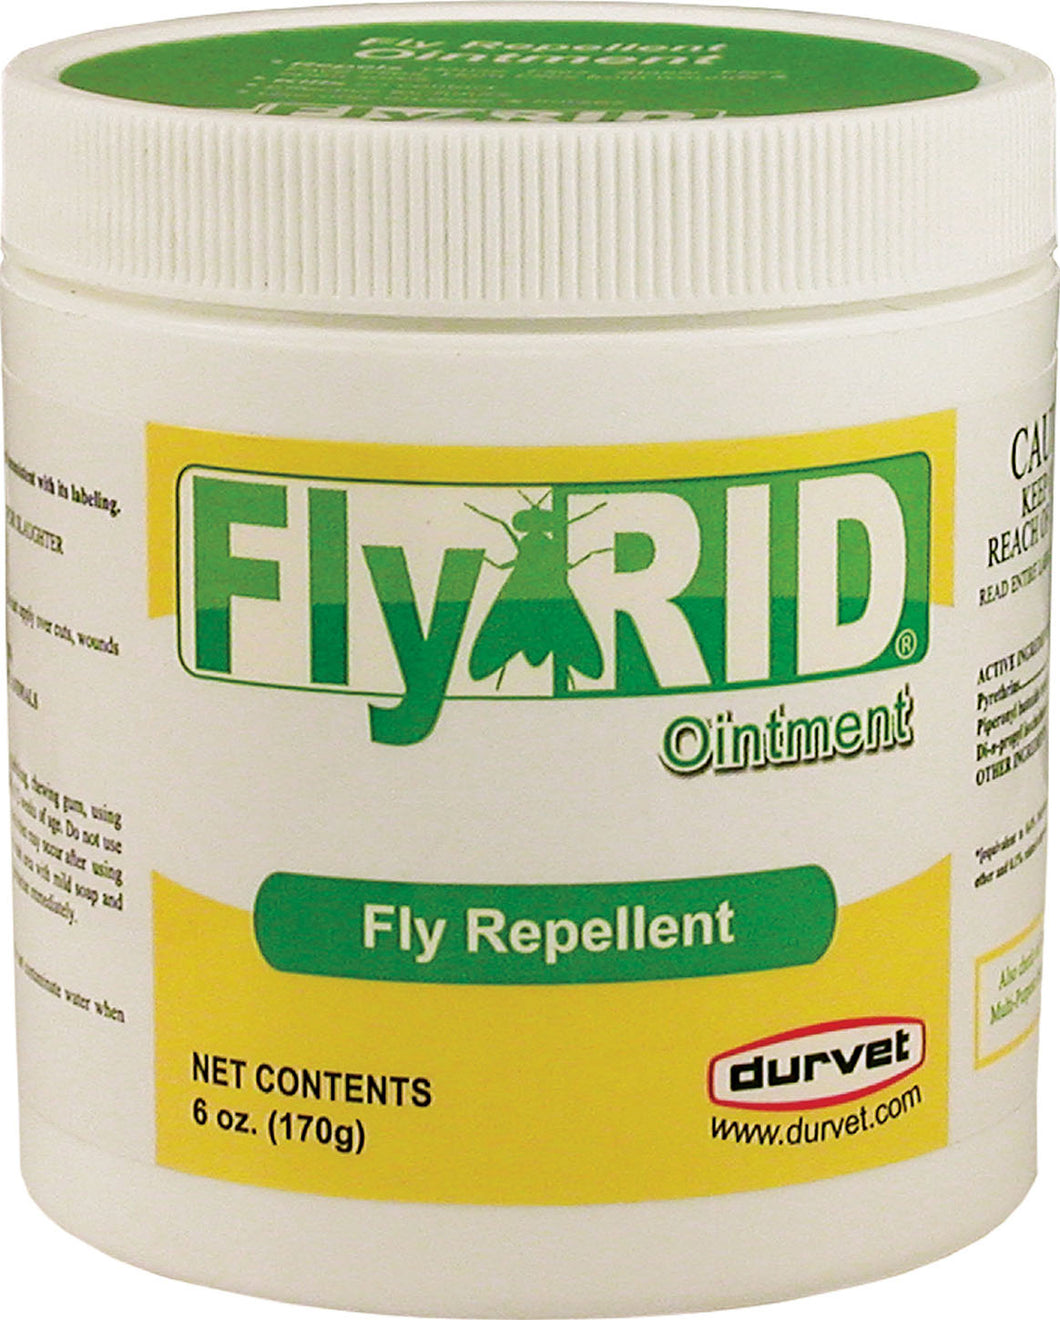 Fly Rid Insecticide Ointment